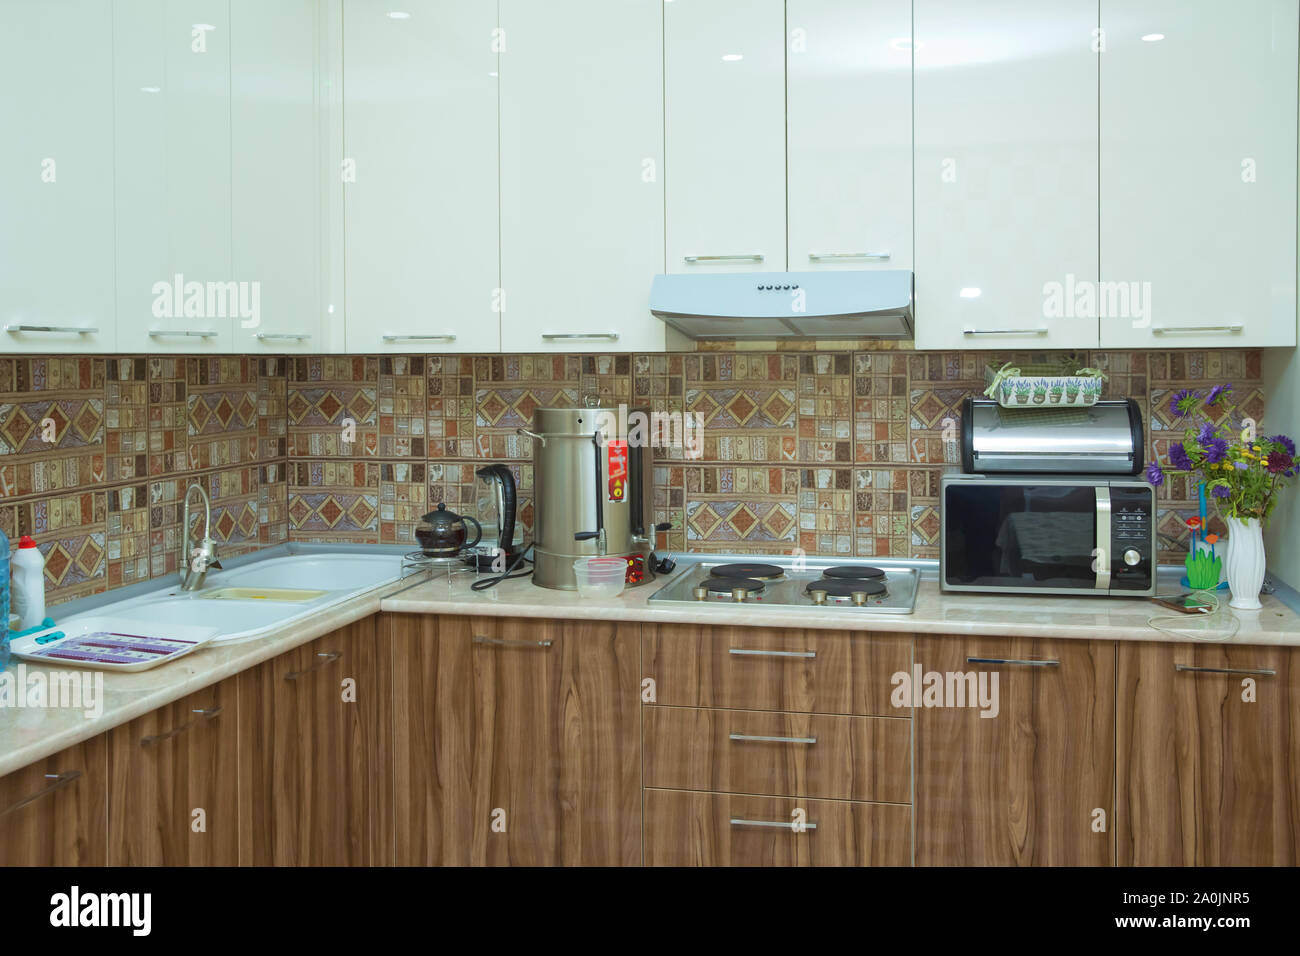 Brown And White Kitchen Design Refrigerator Modern Kitchen With Brown Kitchen Cabinets Oversized Kitchen Stylish Interior With Dining Stock Photo Alamy,United Airlines Baggage Restrictions Basic Economy